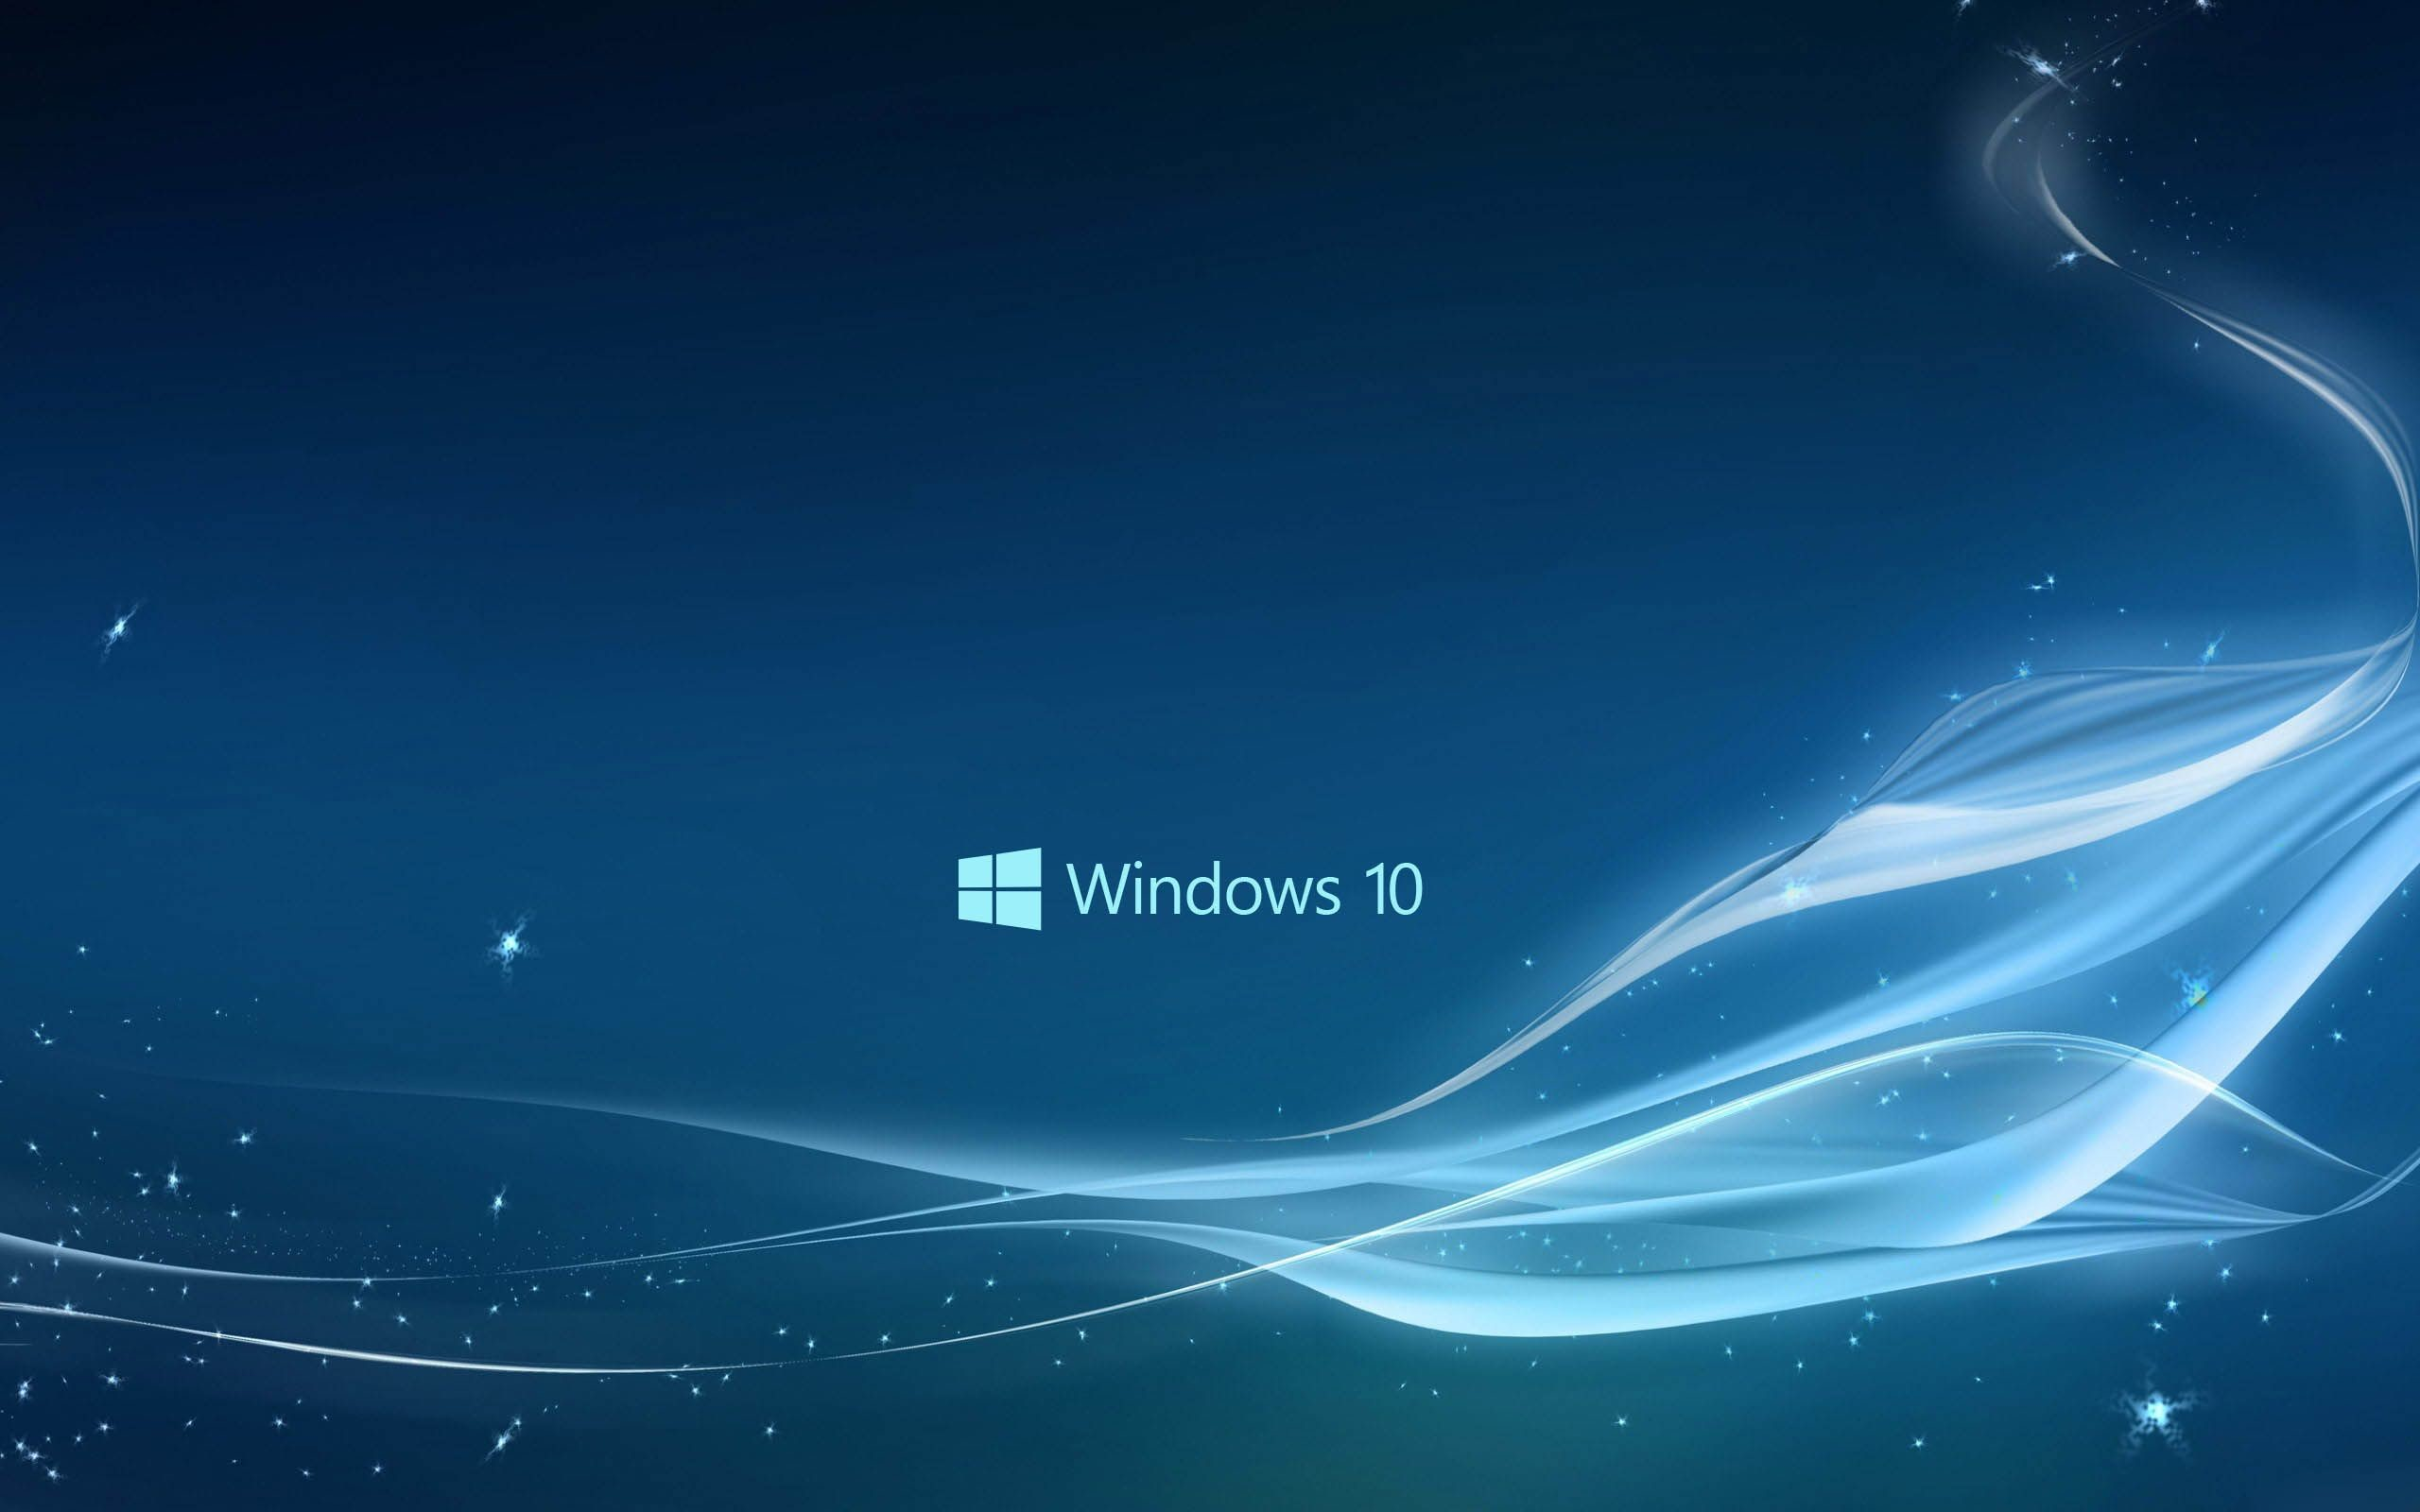 2560x1600 23 Windows 10 Wallpaper Designs That Will Rock Your World